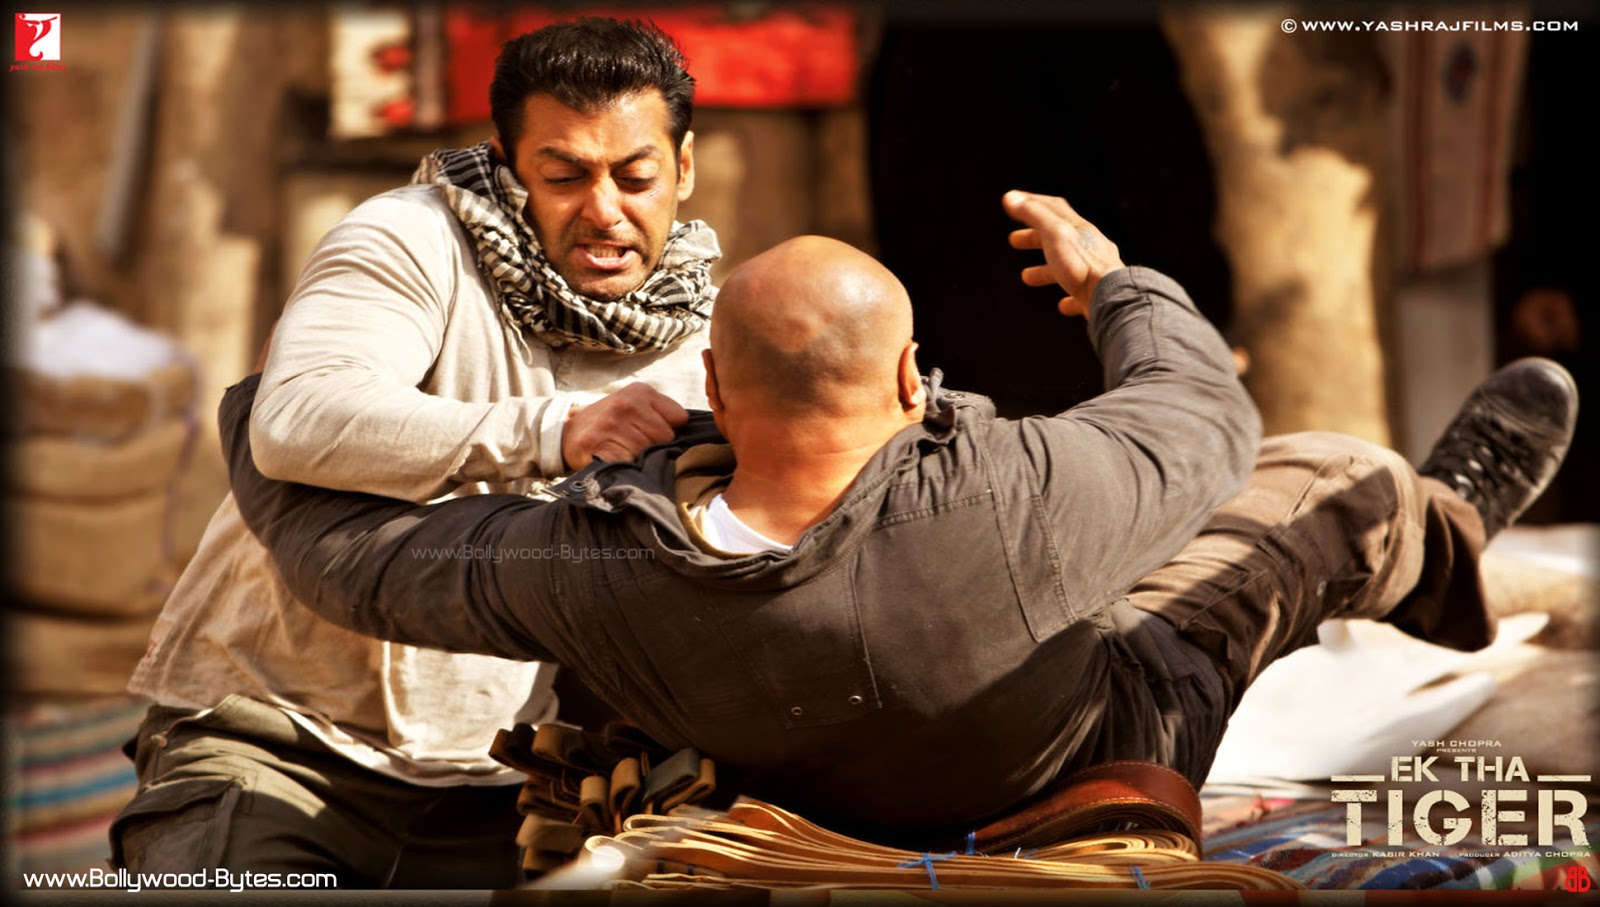 Ek Tha Tiger Movie Desktop HD Poster